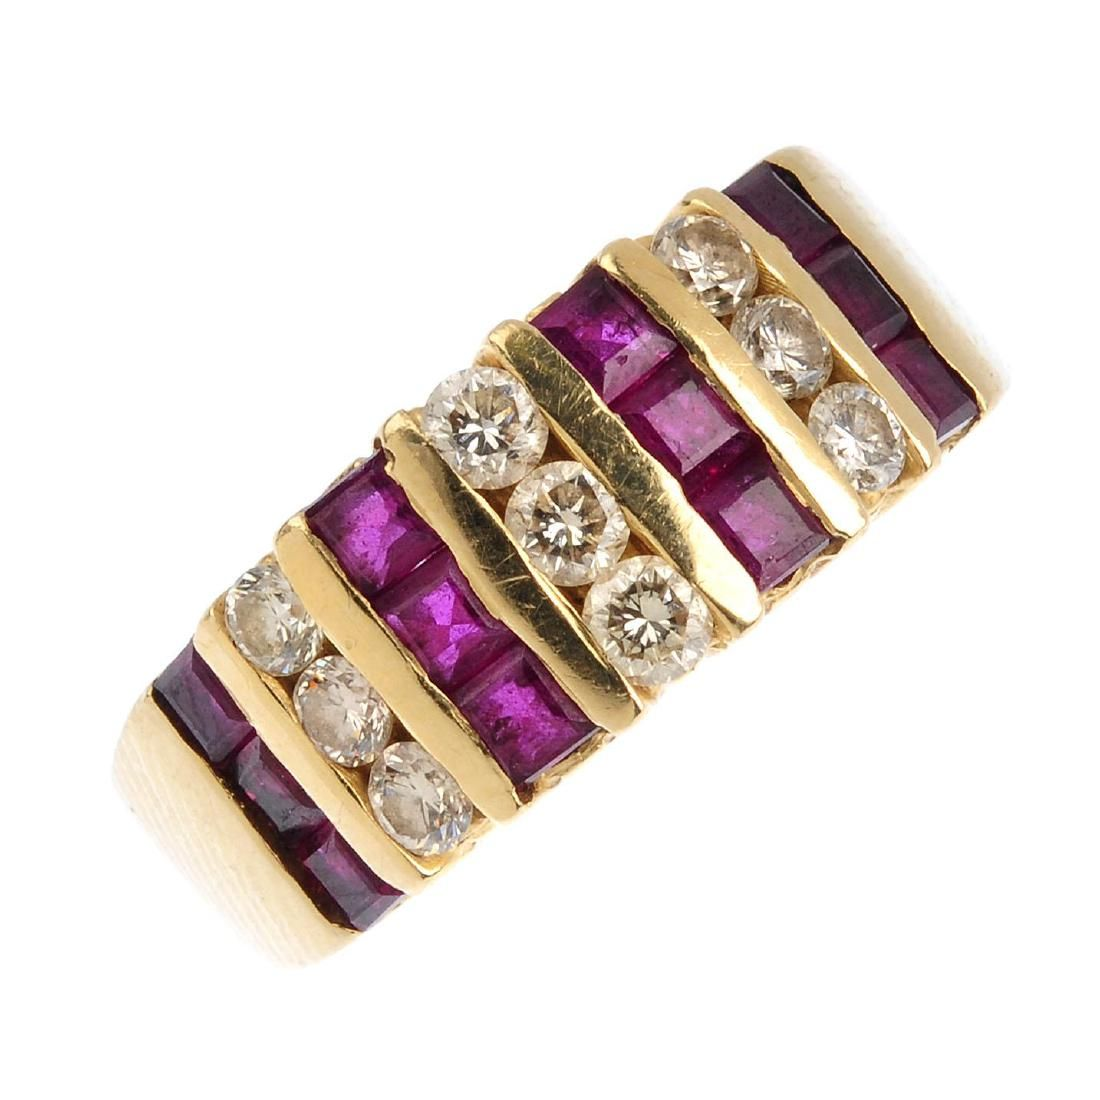 A diamond and ruby ring. The alternating square-shape